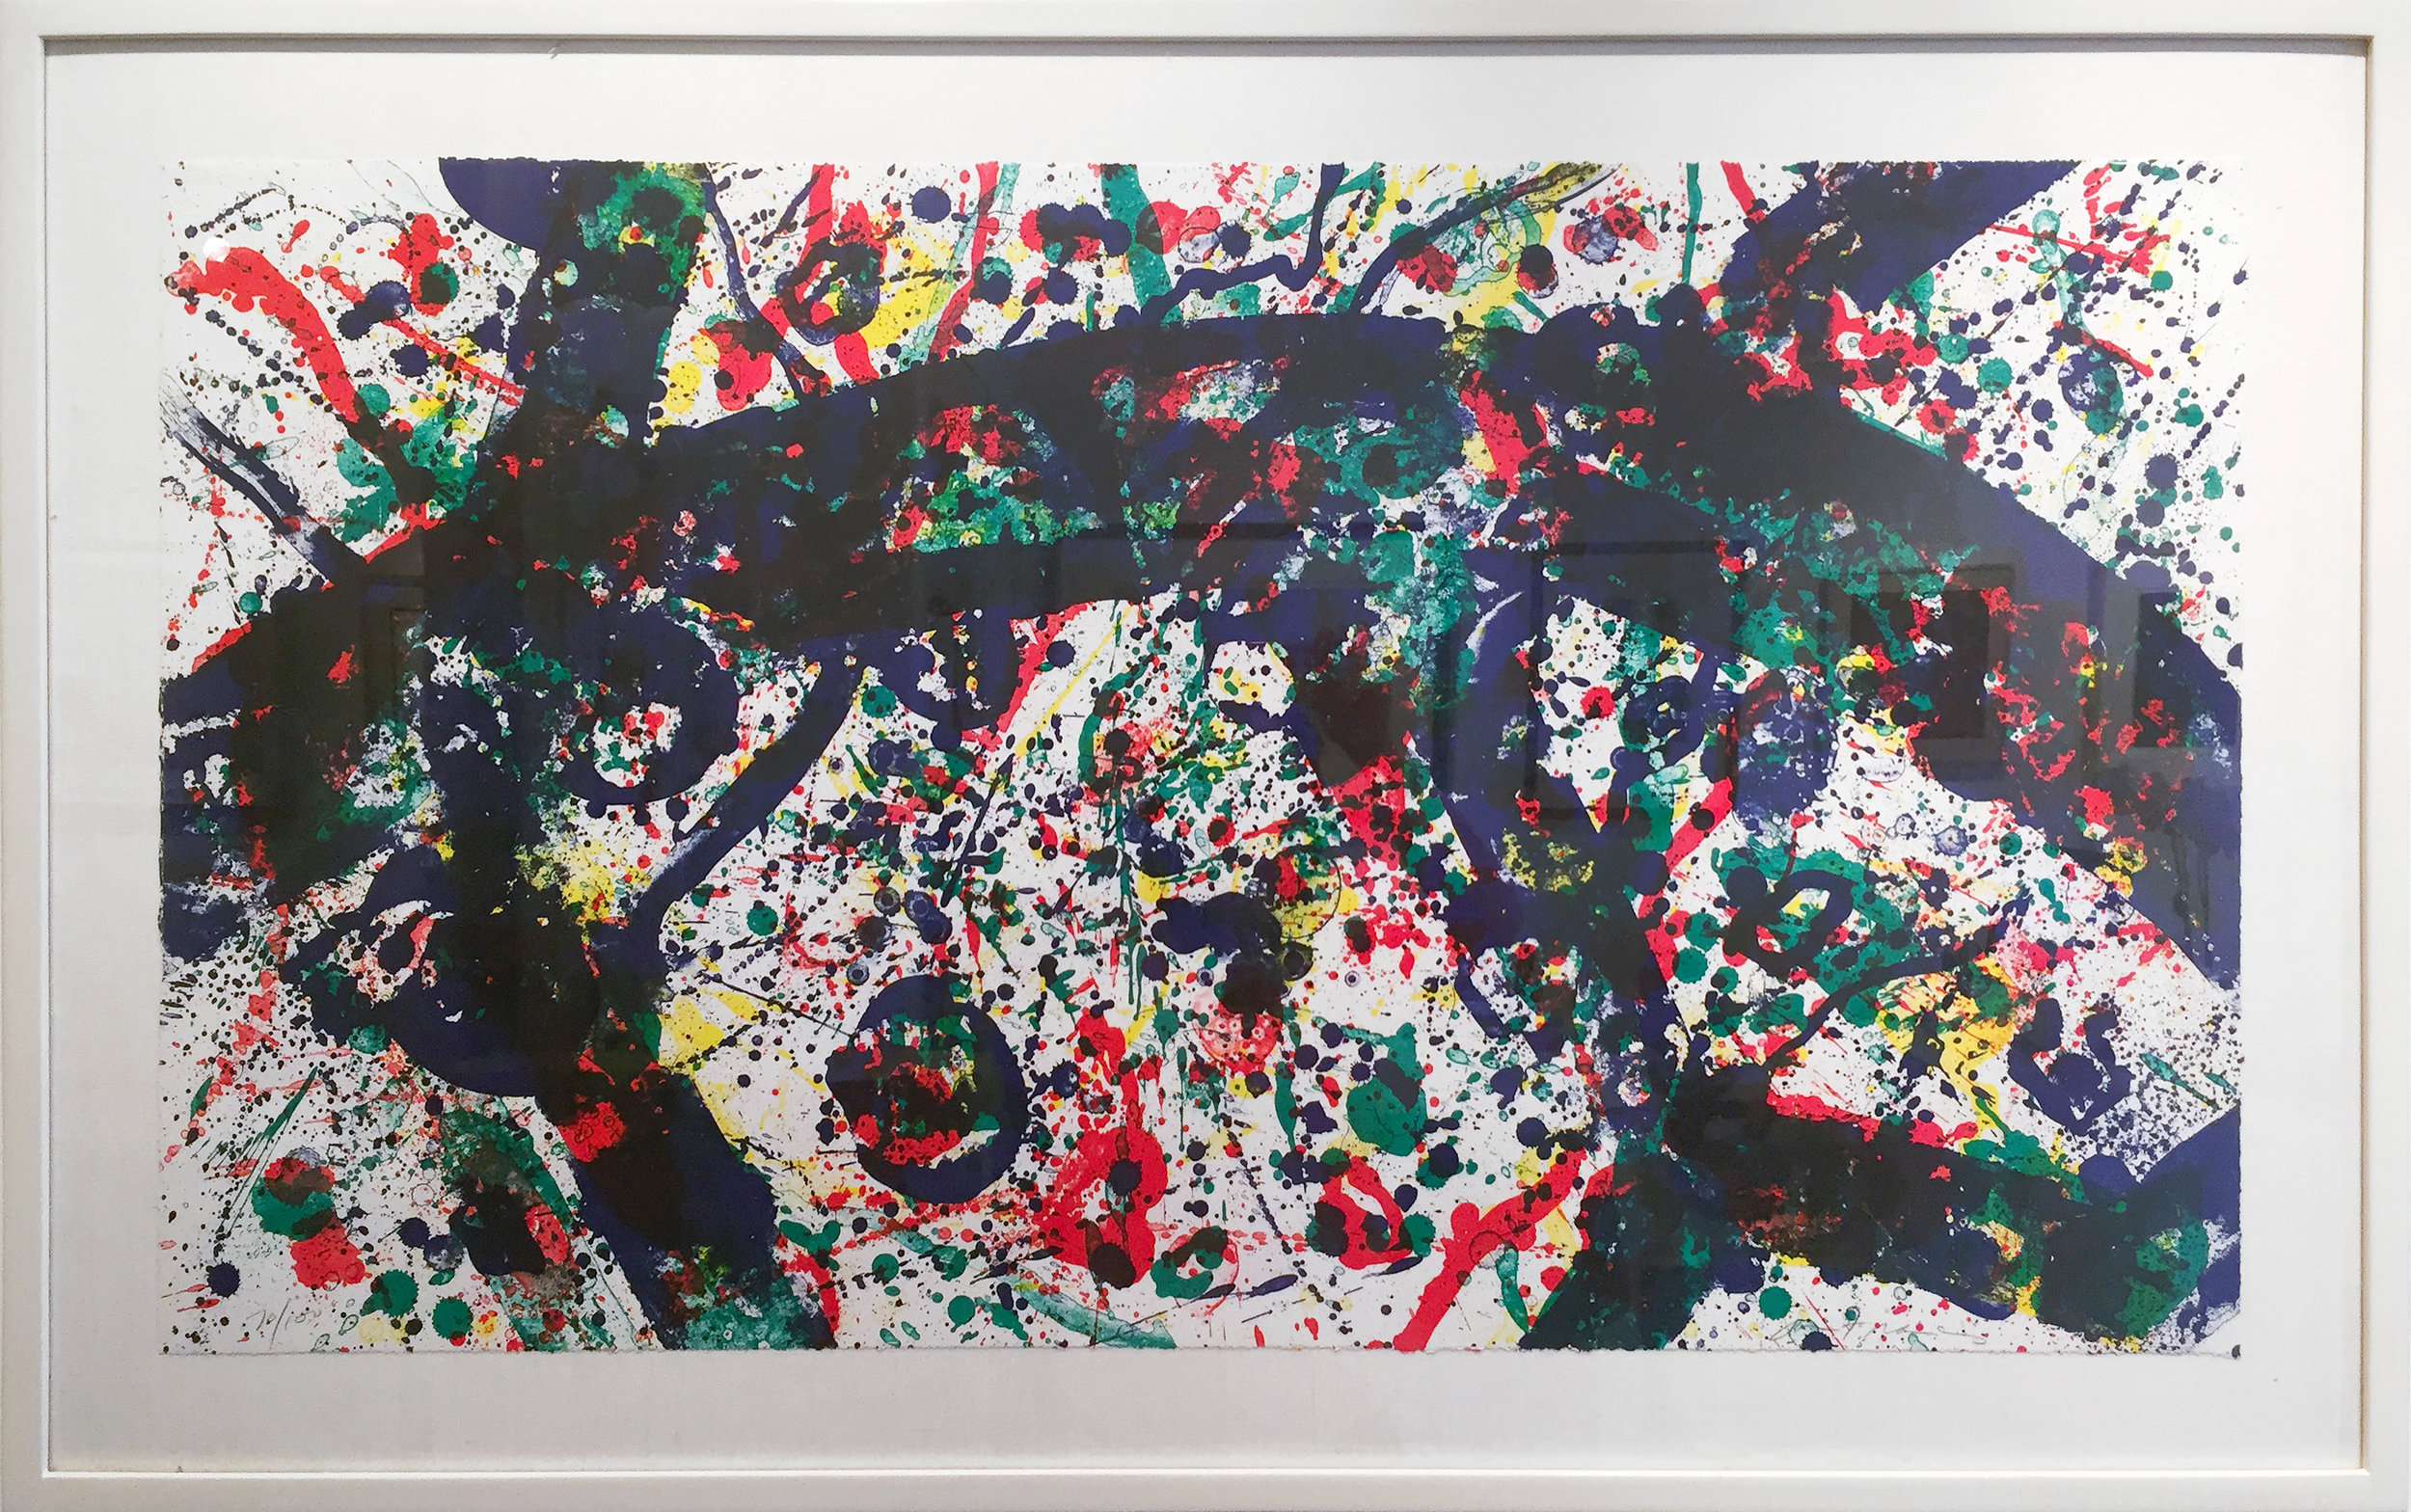 Untitled (ed. 70 of 100), 1974, 22.25 x 39 inches, Color lithograph